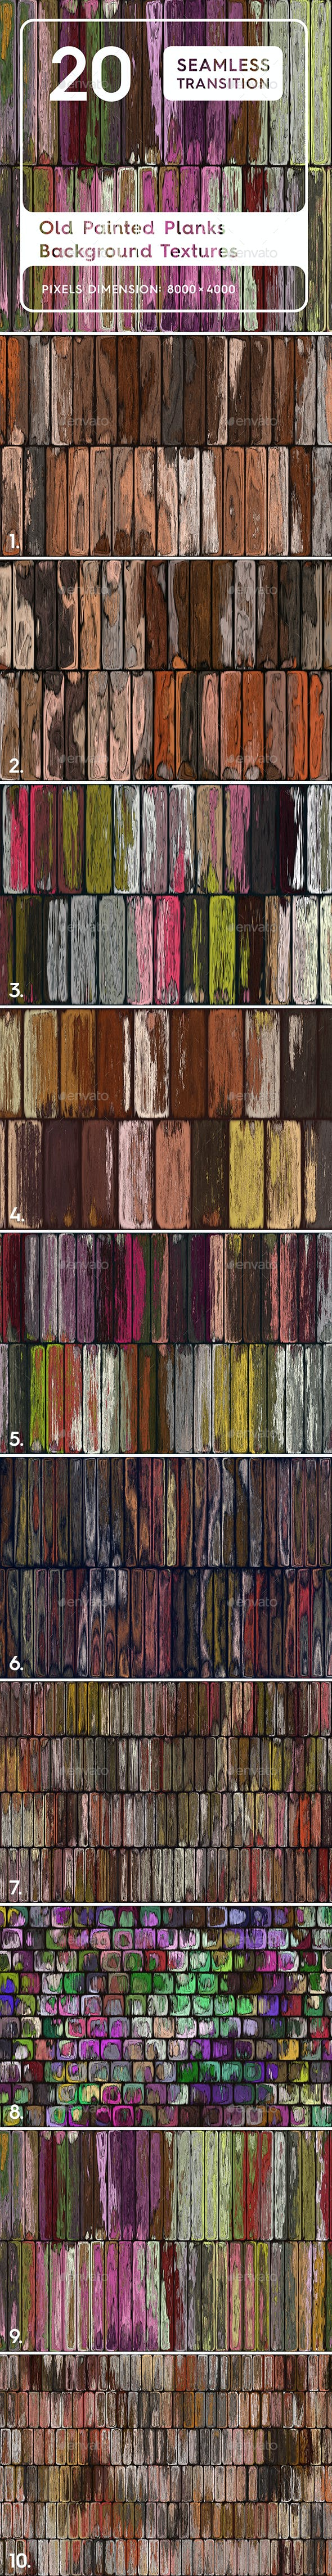 10 Old Painted Planks Background Textures - 3DOcean Item for Sale